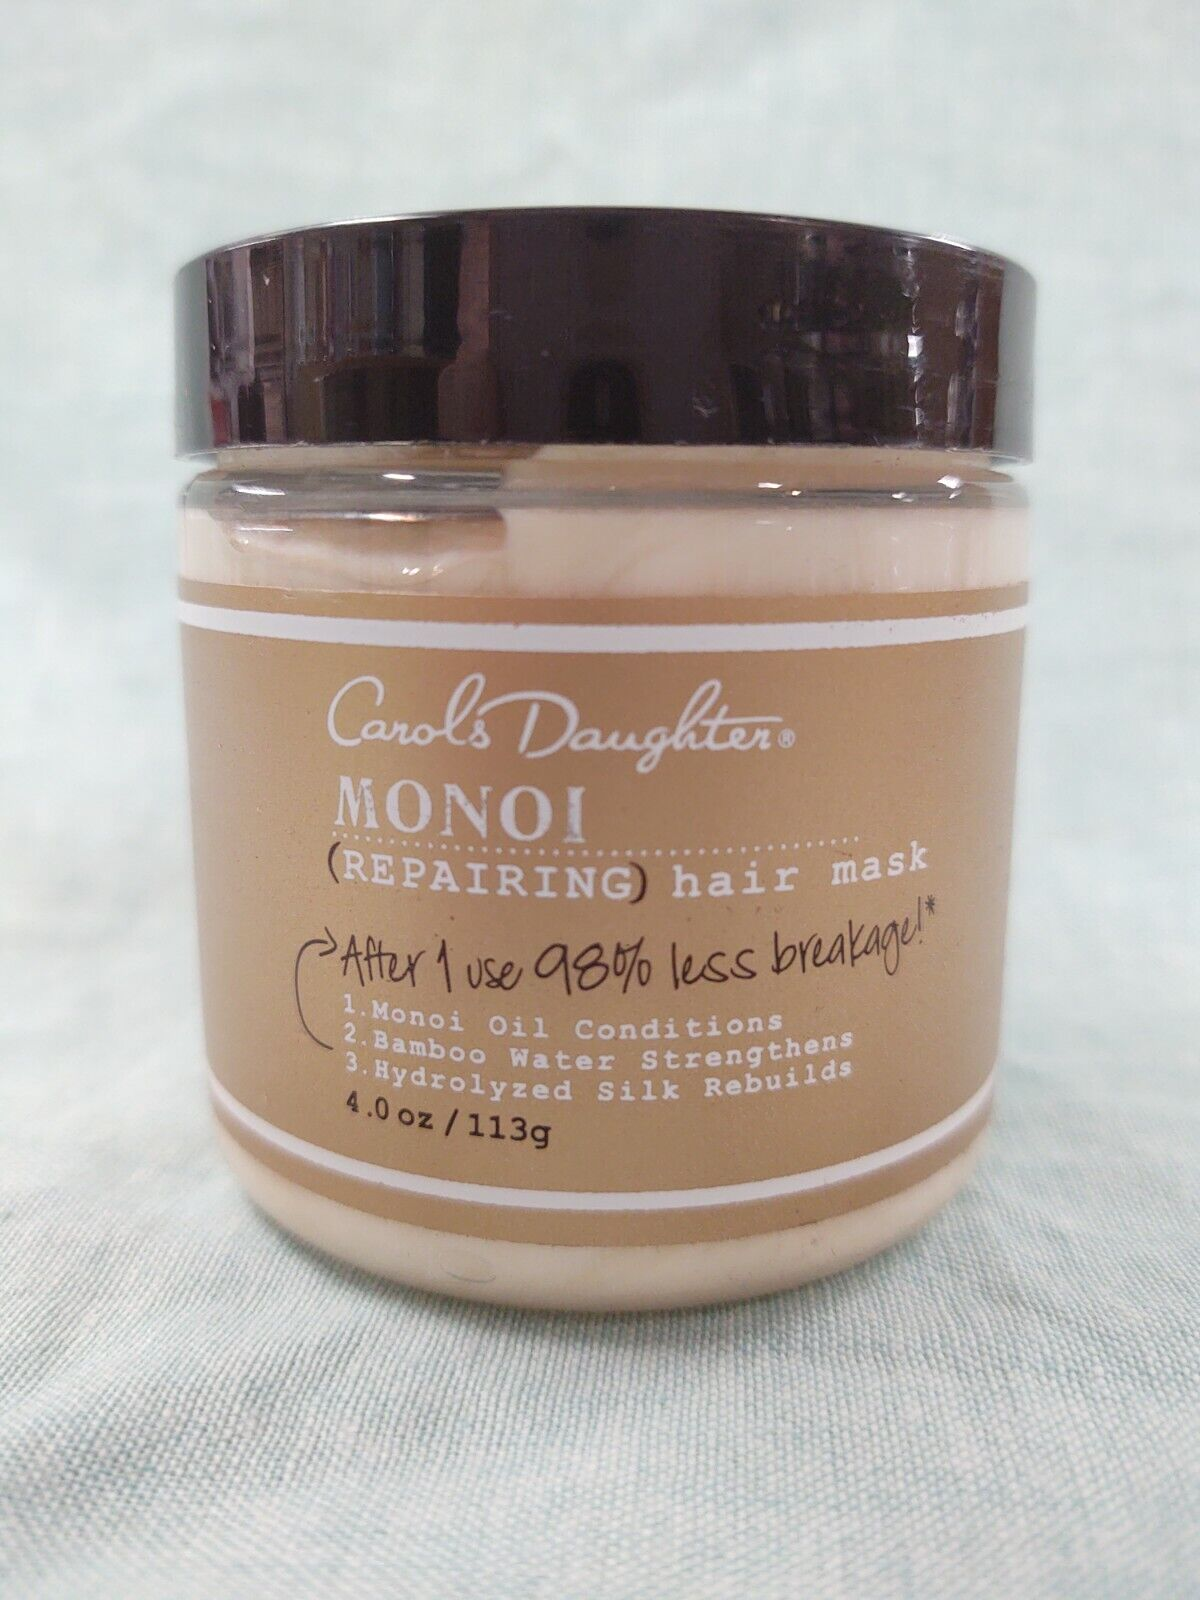 Carol's Daughter MONOI Damage Repairing Hair Mask 4 oz. Trav